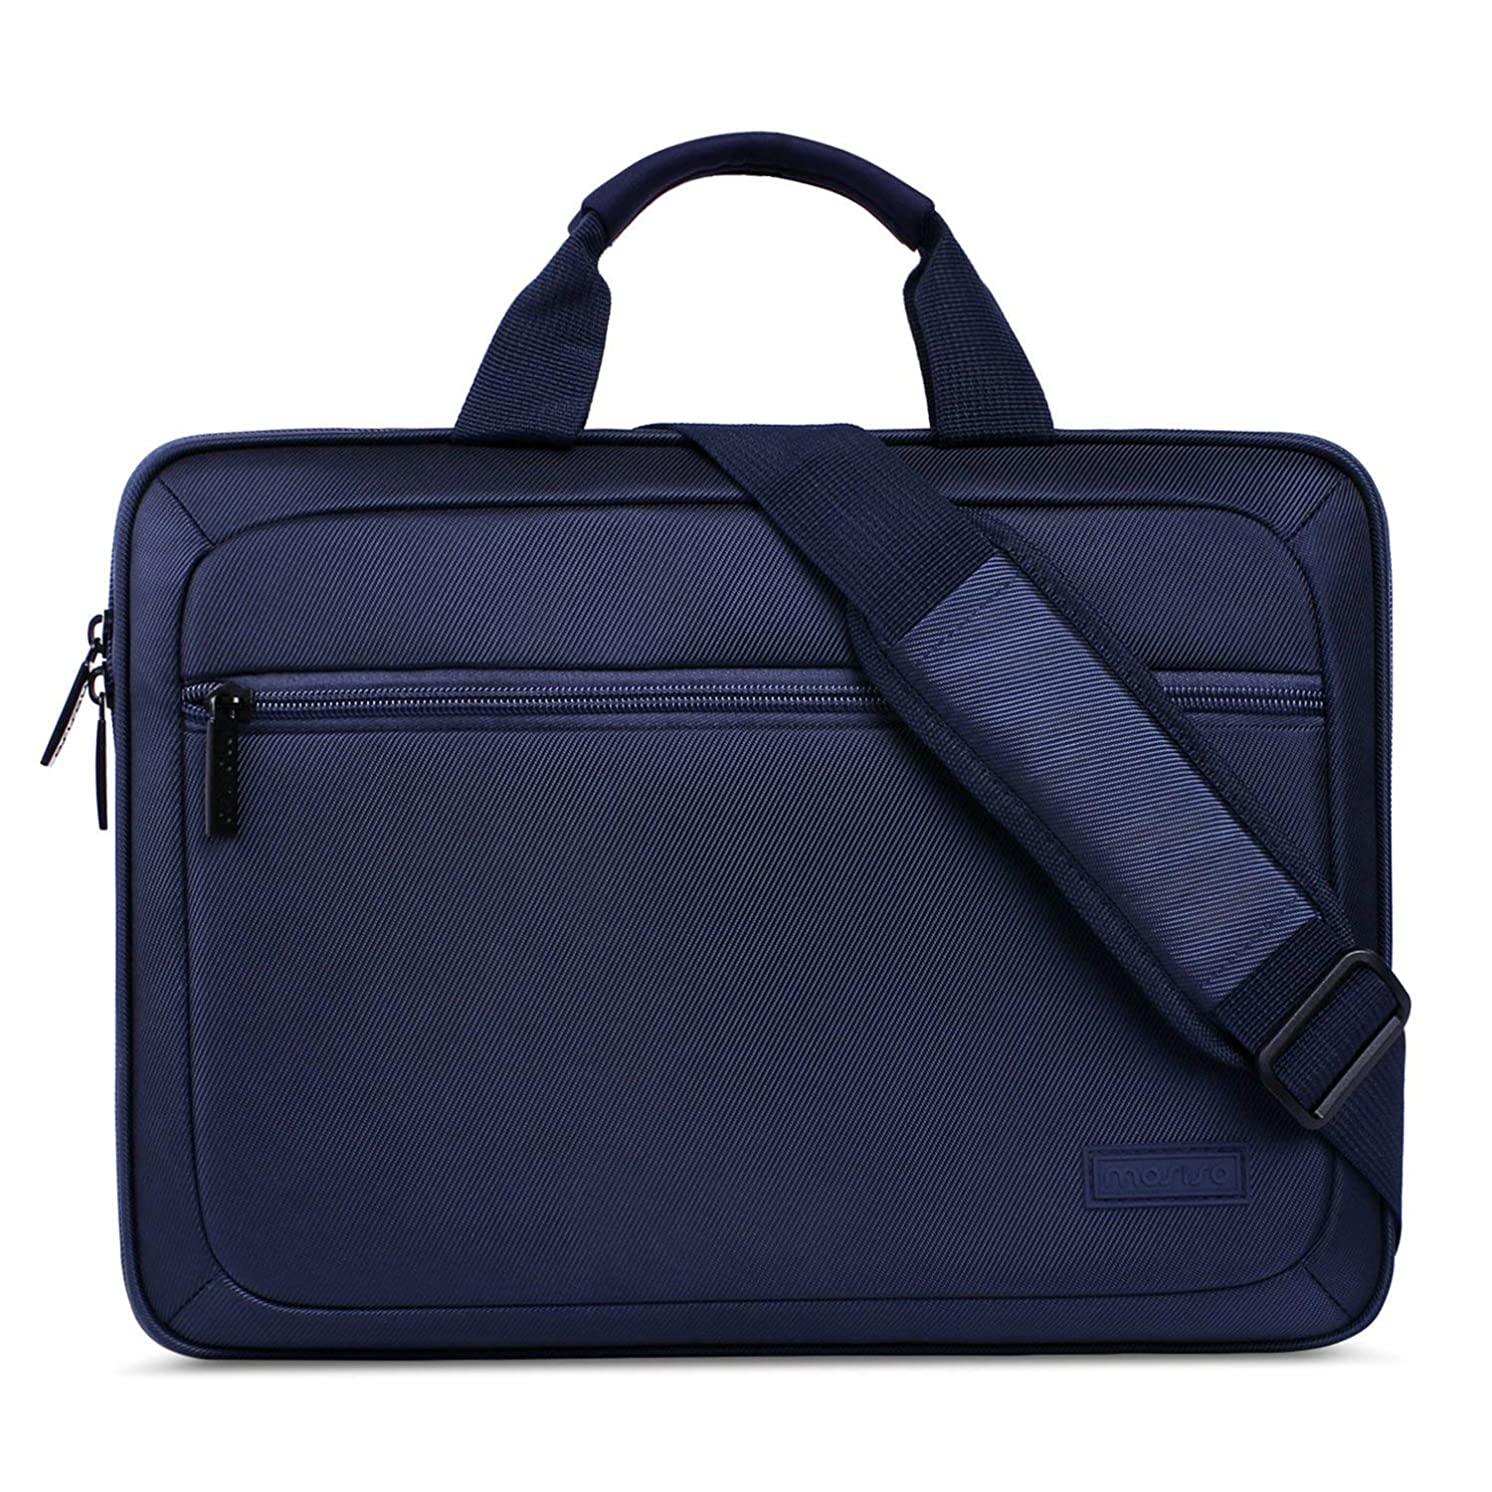 MOSISO EVA Shockproof Laptop Shoulder Bag Compatible MacBook Air 13, MacBook Pro Retina 13 Inch 2012-2015, Microsoft Surface Laptop, with Handle & Accessory Bag & Back Belt for Trolly Case, Navy Blue